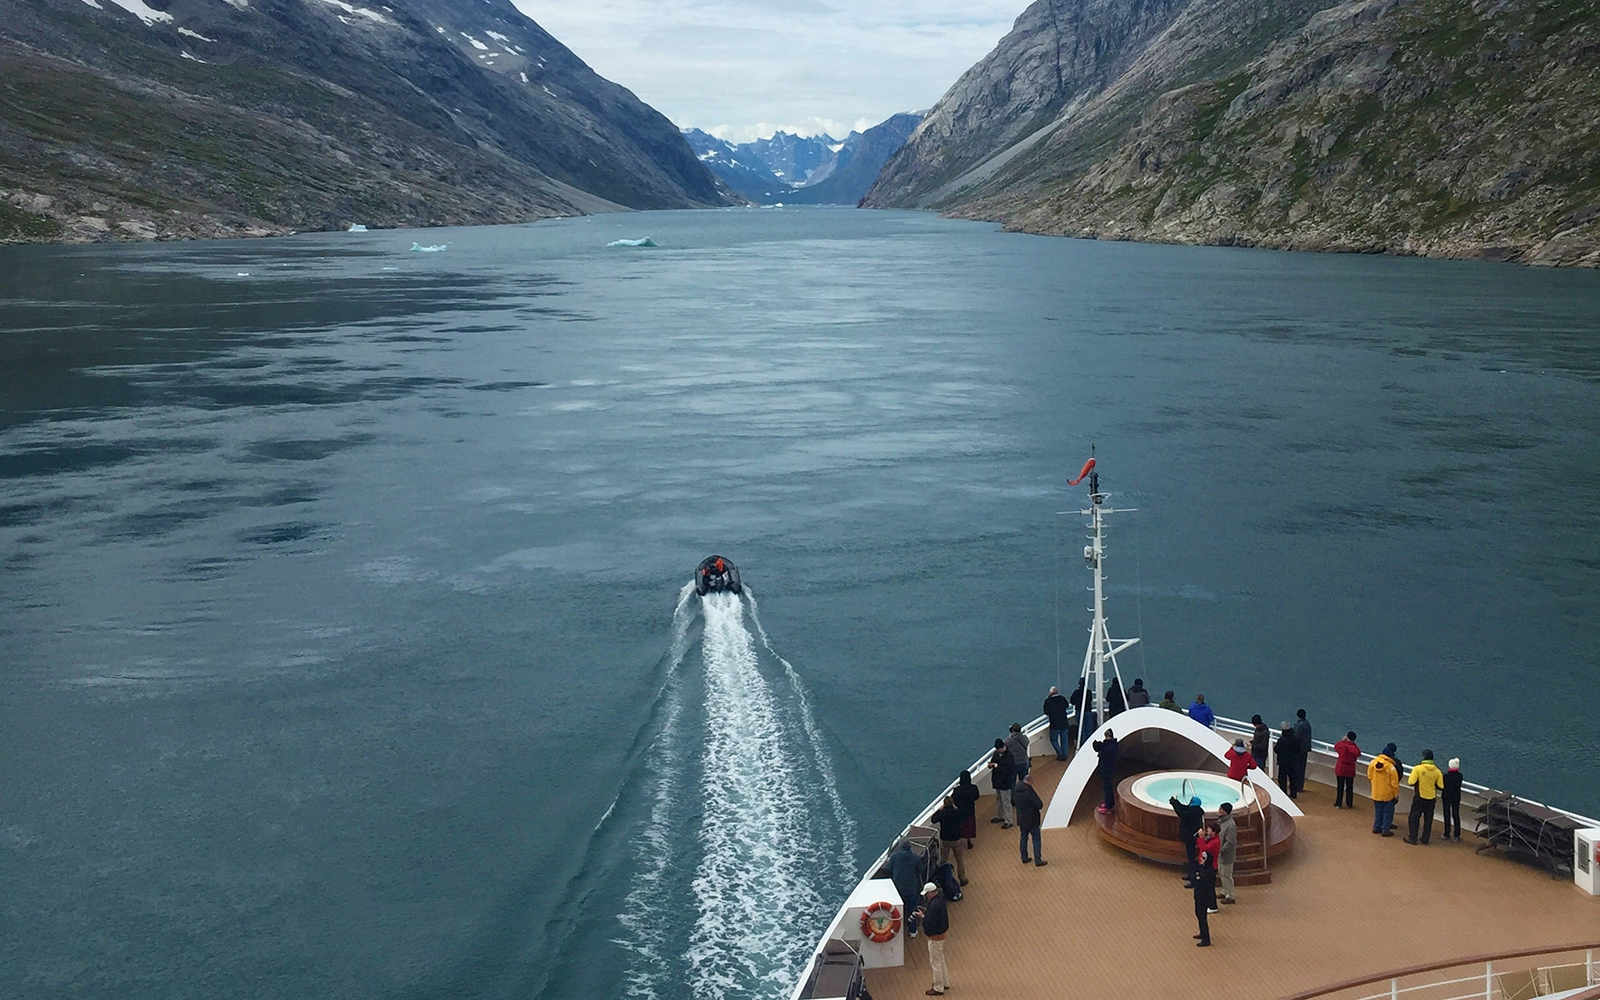 fjords of Prince Christian Sound, Greenland